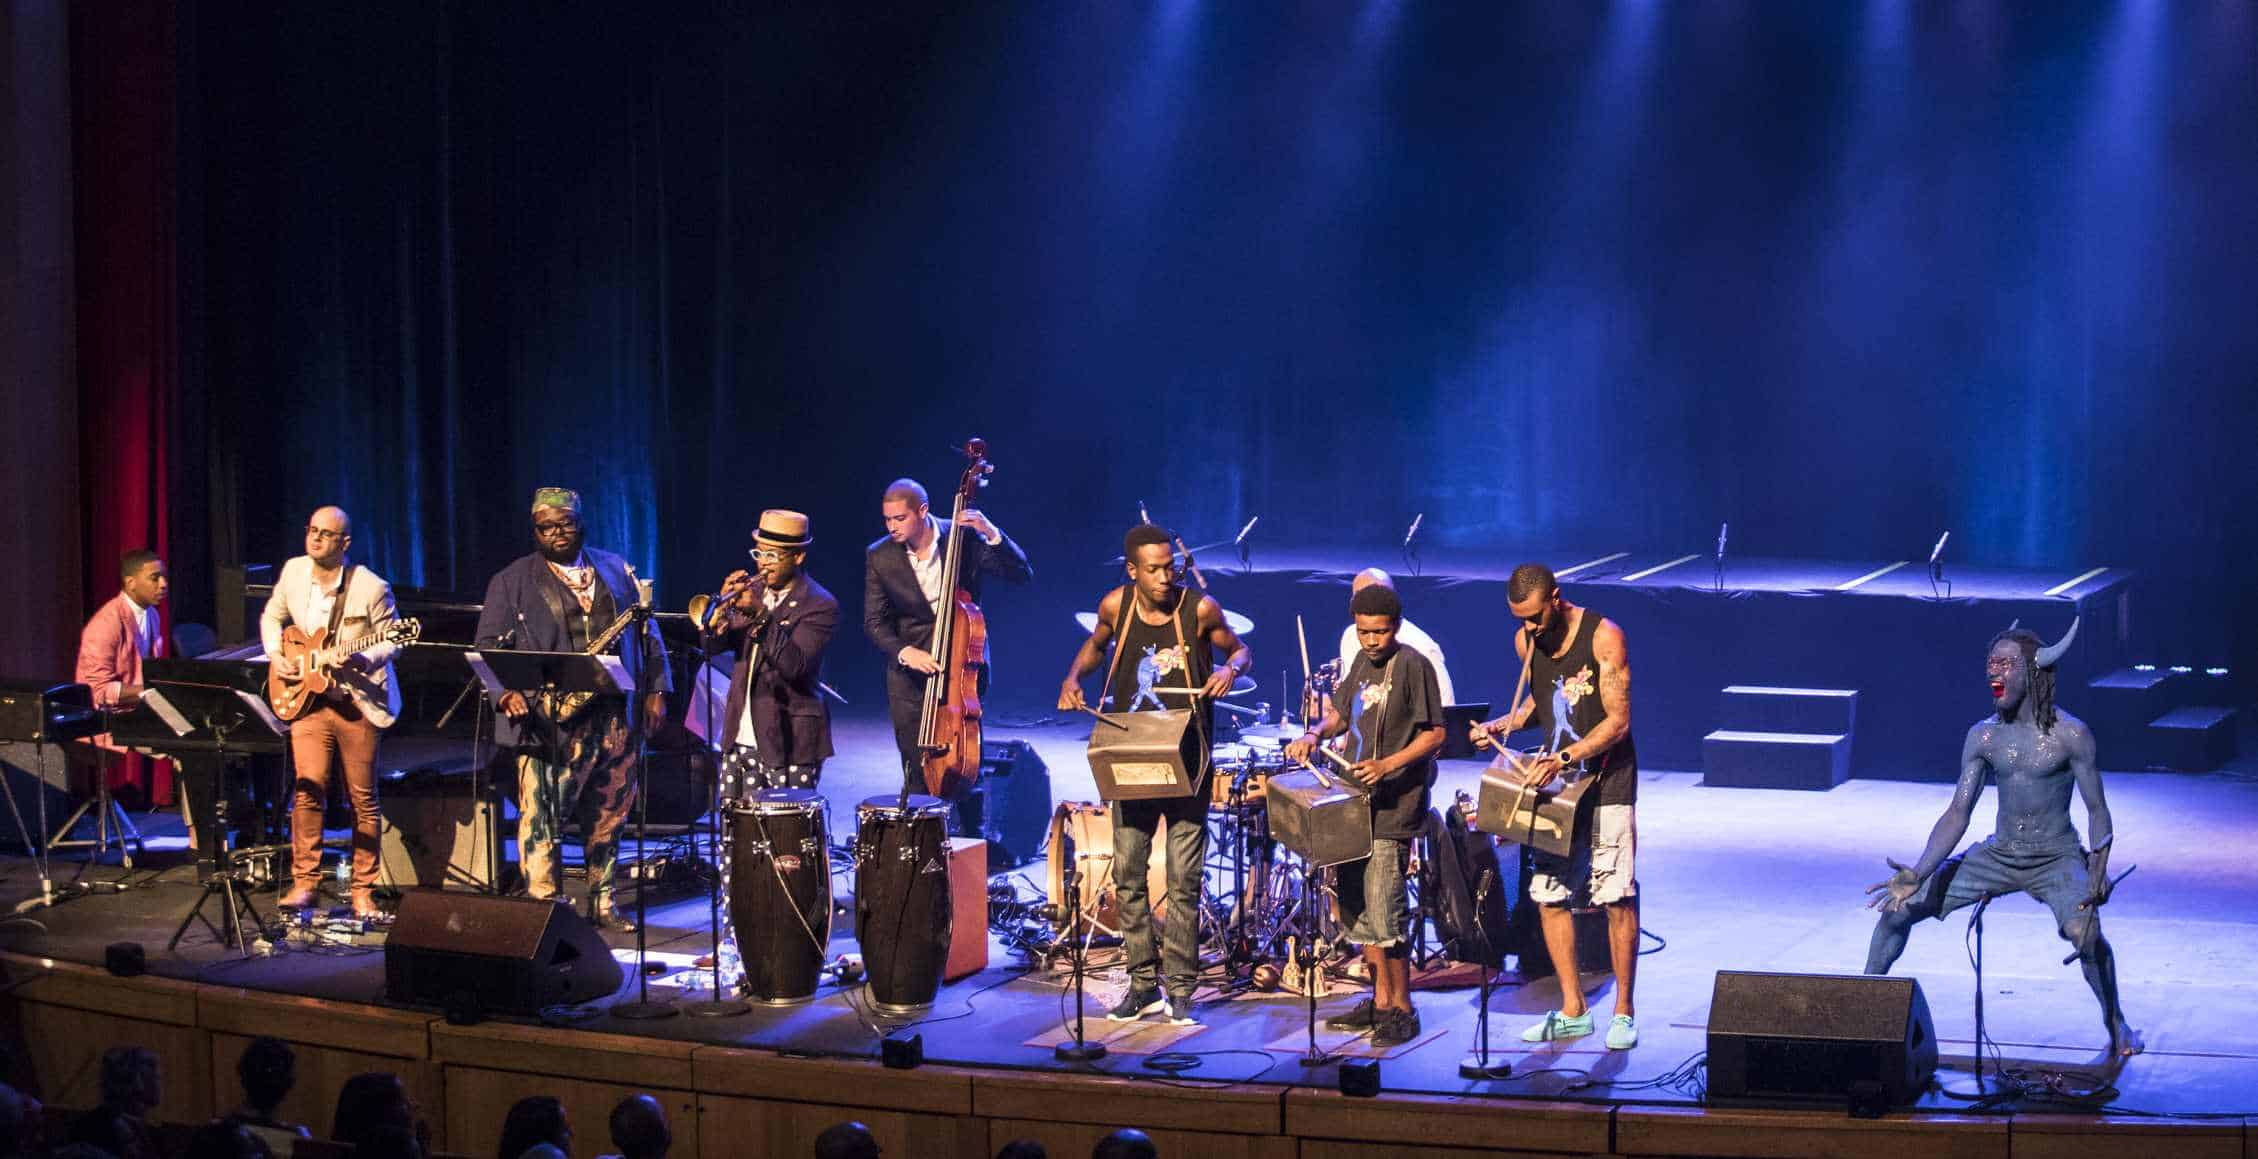 Blue Devil onstage with Etienne Charles and band. Photo: Maria Nunes